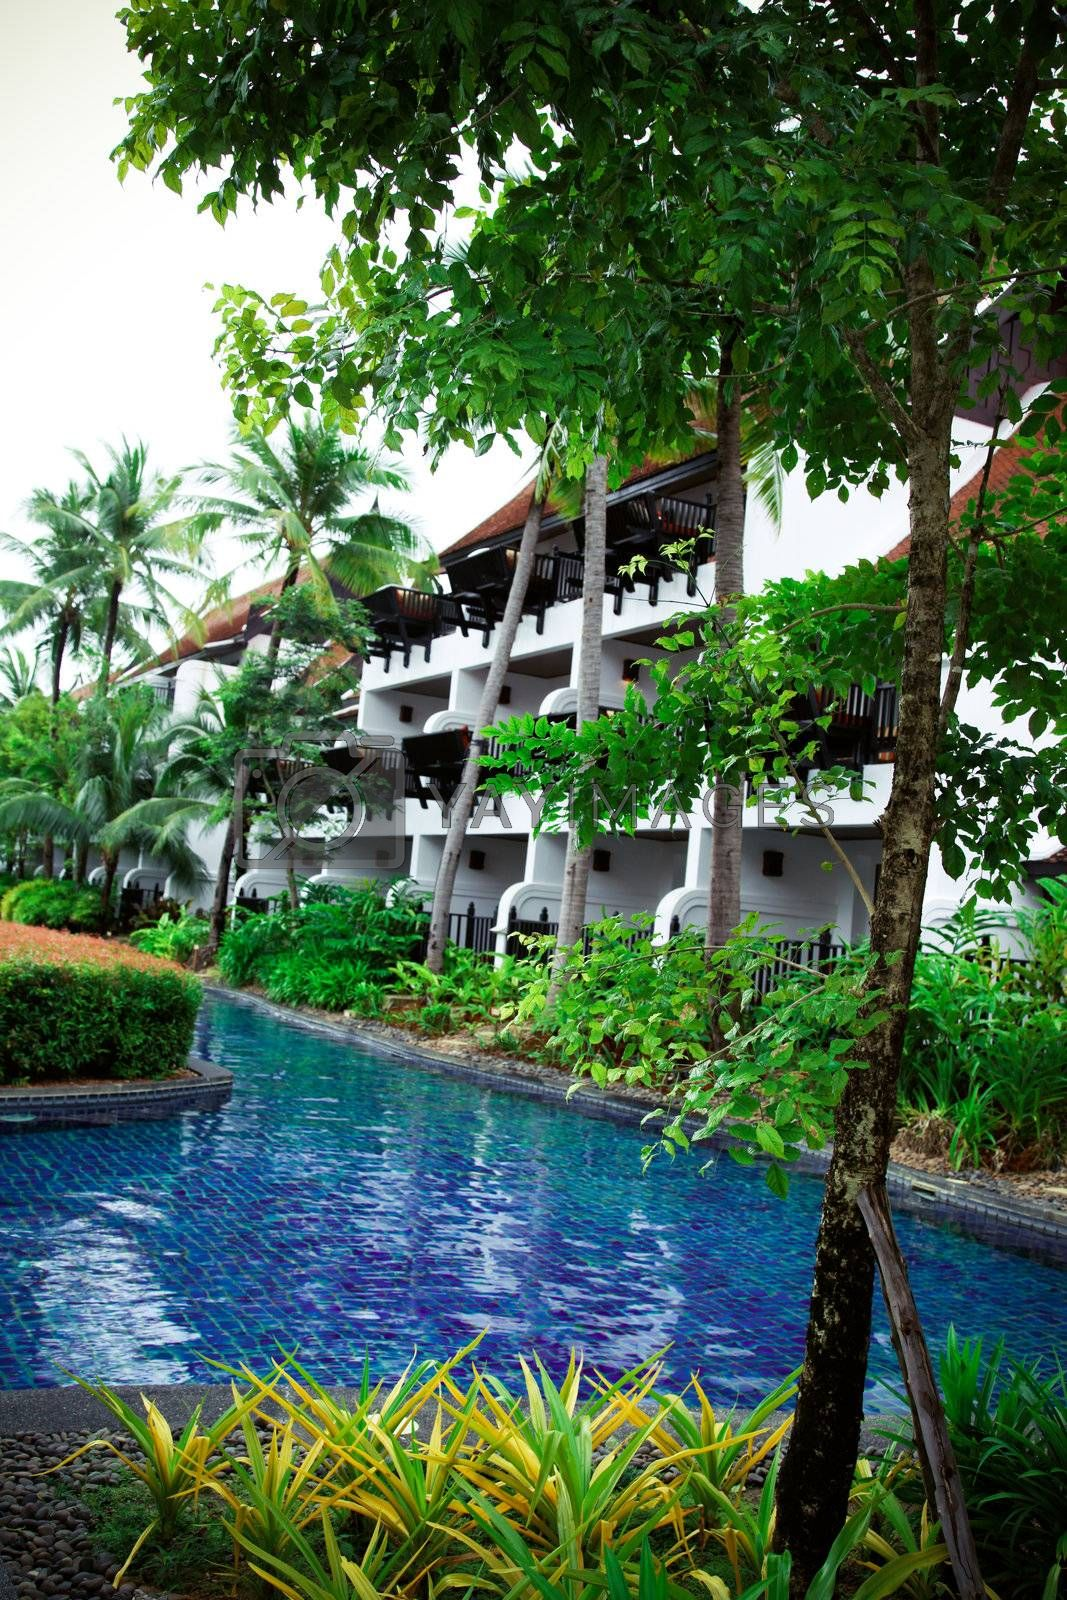 Swimming pool area at a tropical resort in Thailand - travel and tourism.